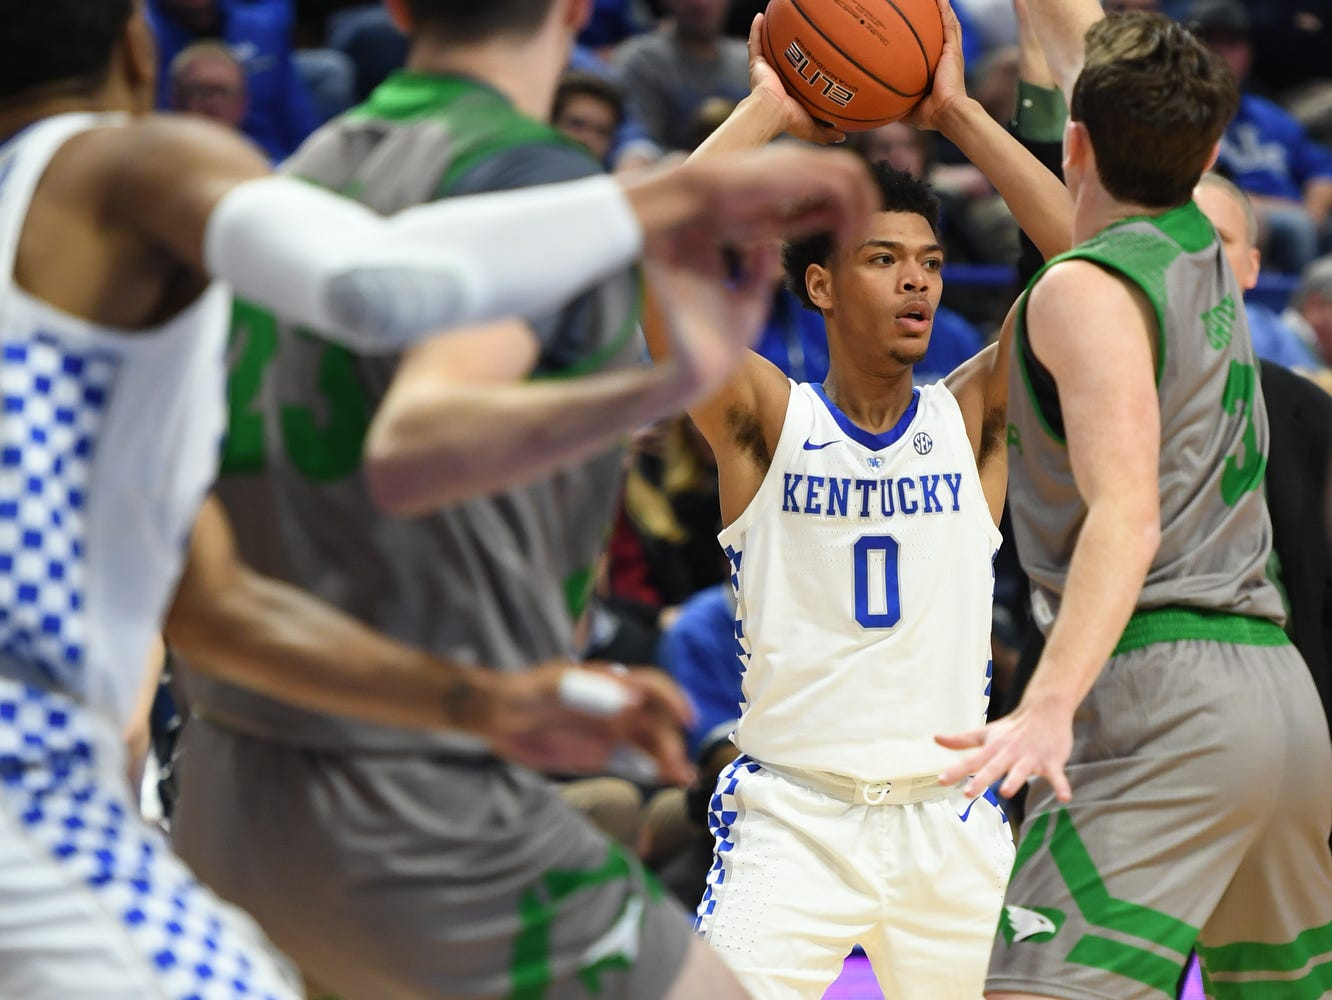 UK G Quade Green during the University of Kentucky mens basketball game against North Dakota at Rupp Arena in Lexington, Kentucky on Wednesday, November 14, 2018.